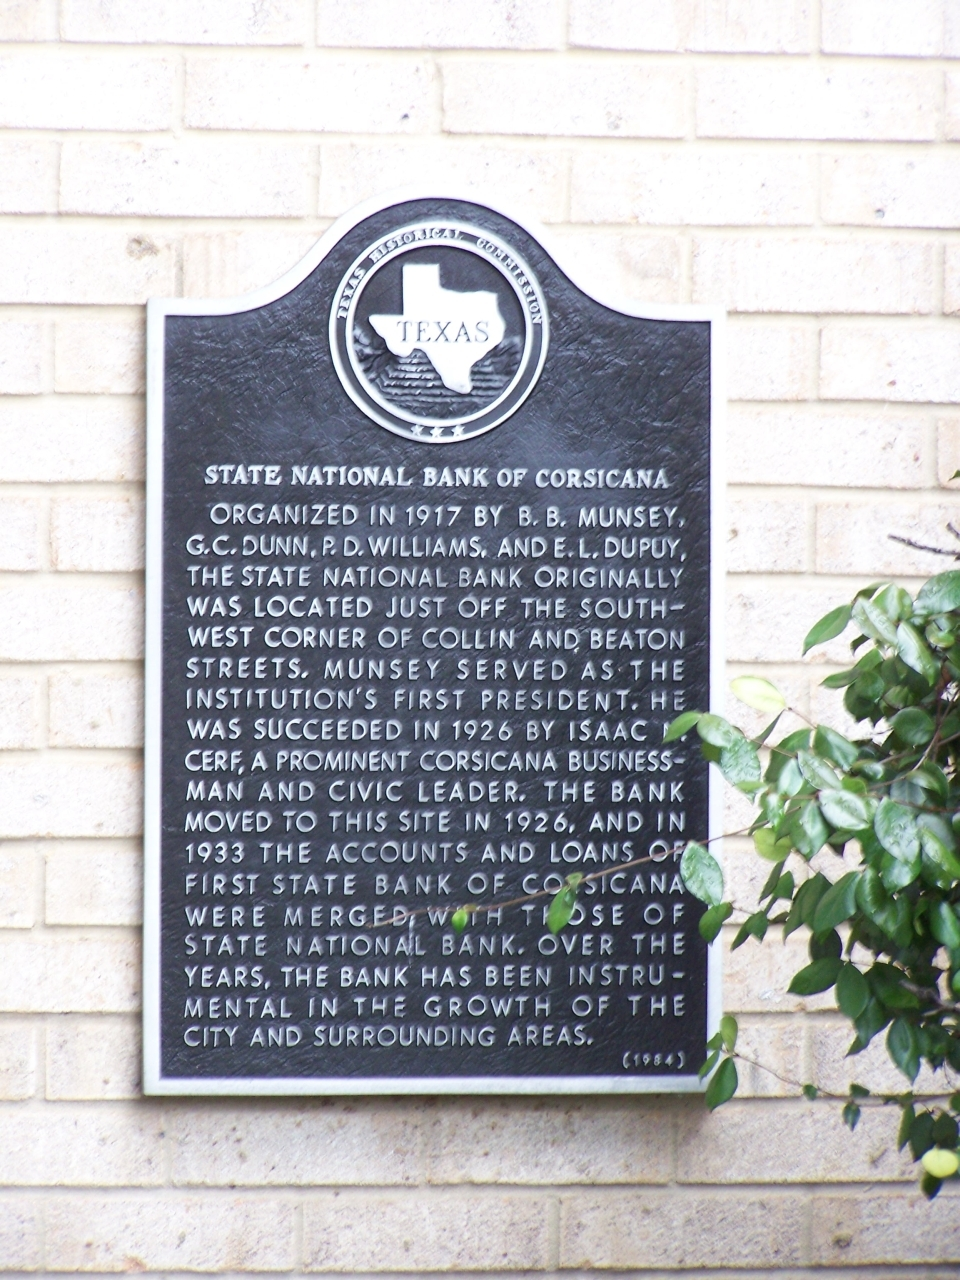 State National Bank of Corsicana Marker